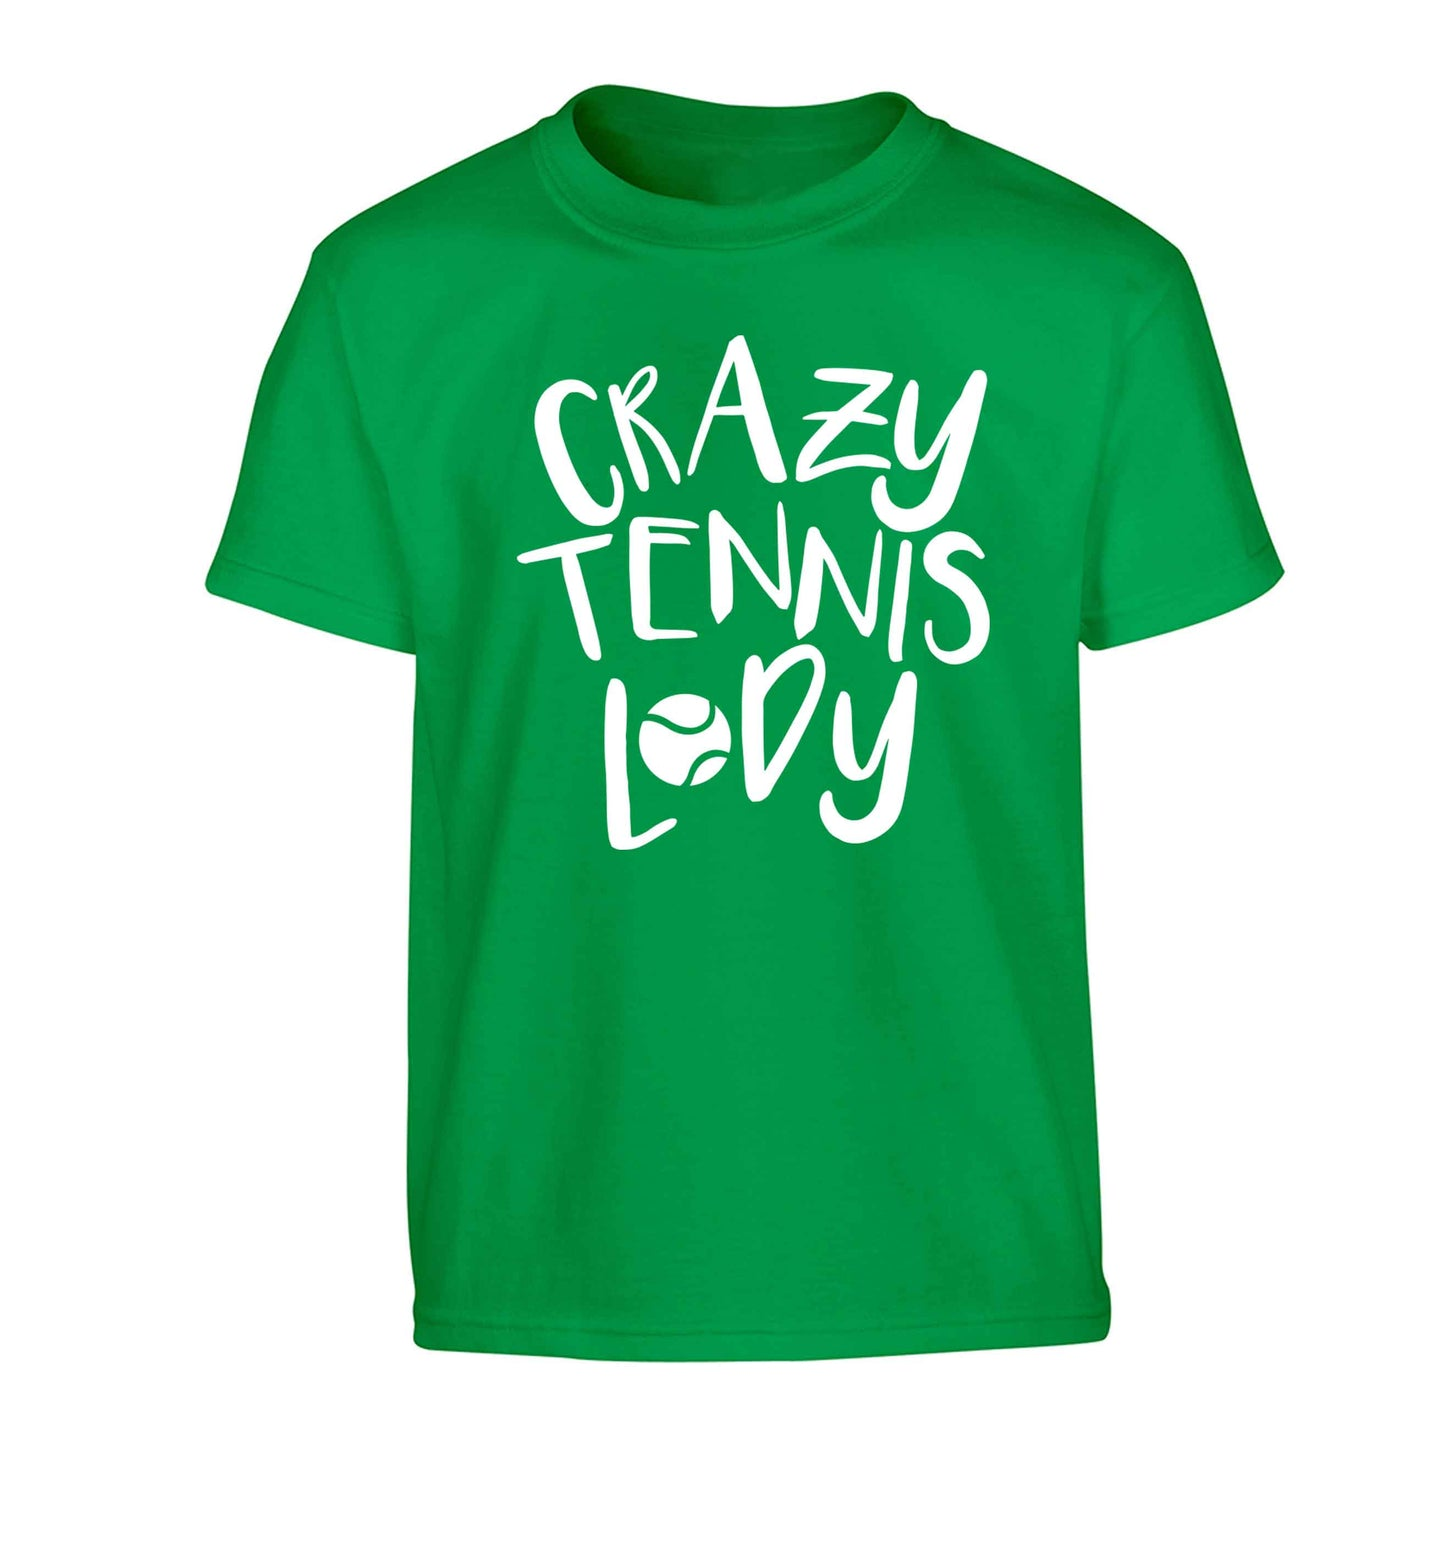 Crazy tennis lady Children's green Tshirt 12-13 Years